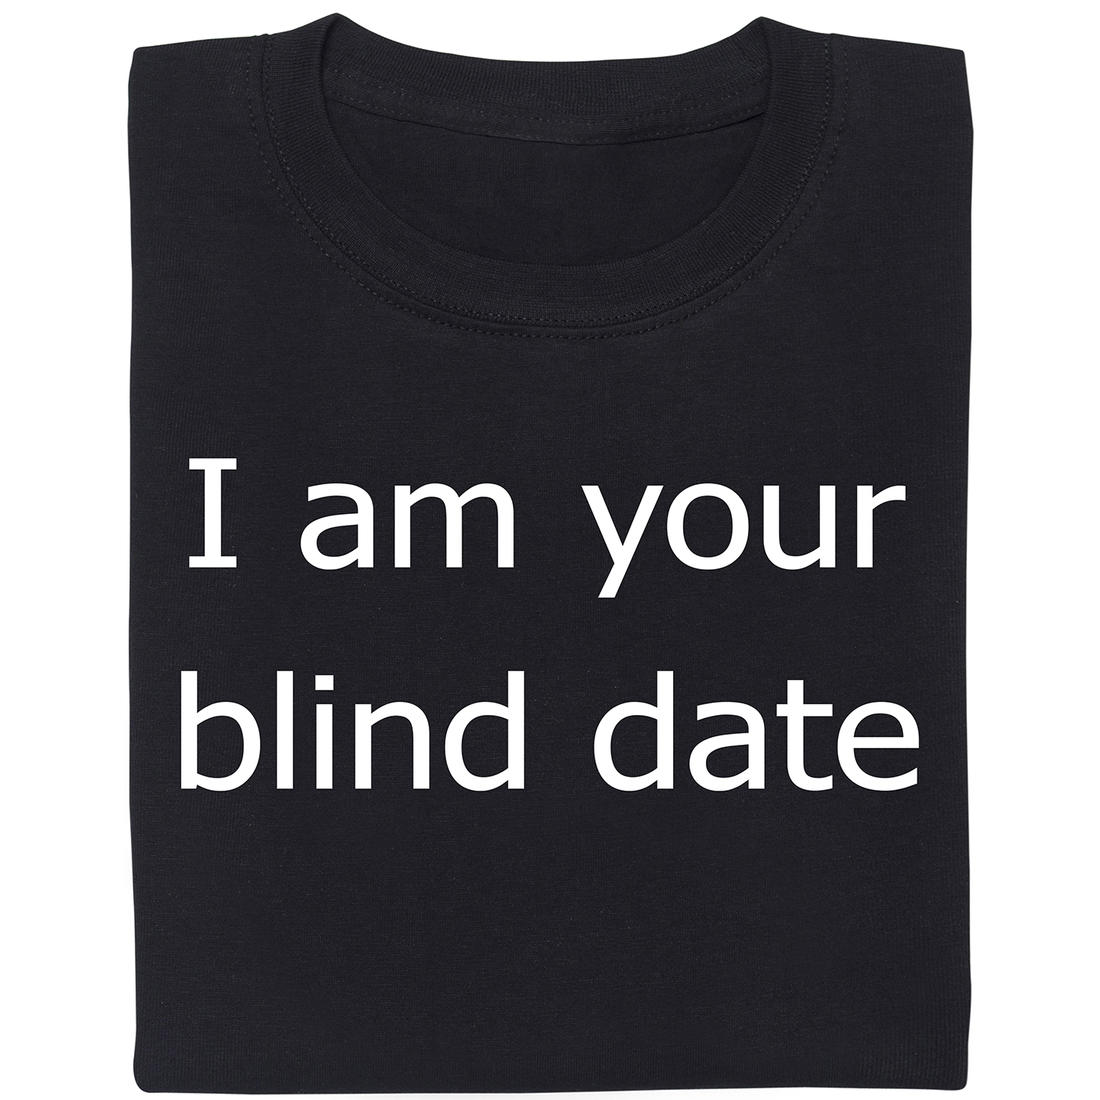 i am dating a blind girl There are some girls who can imitate the body language of an interested girl, but they are not interested in you they will only play with your heart and/or use you.